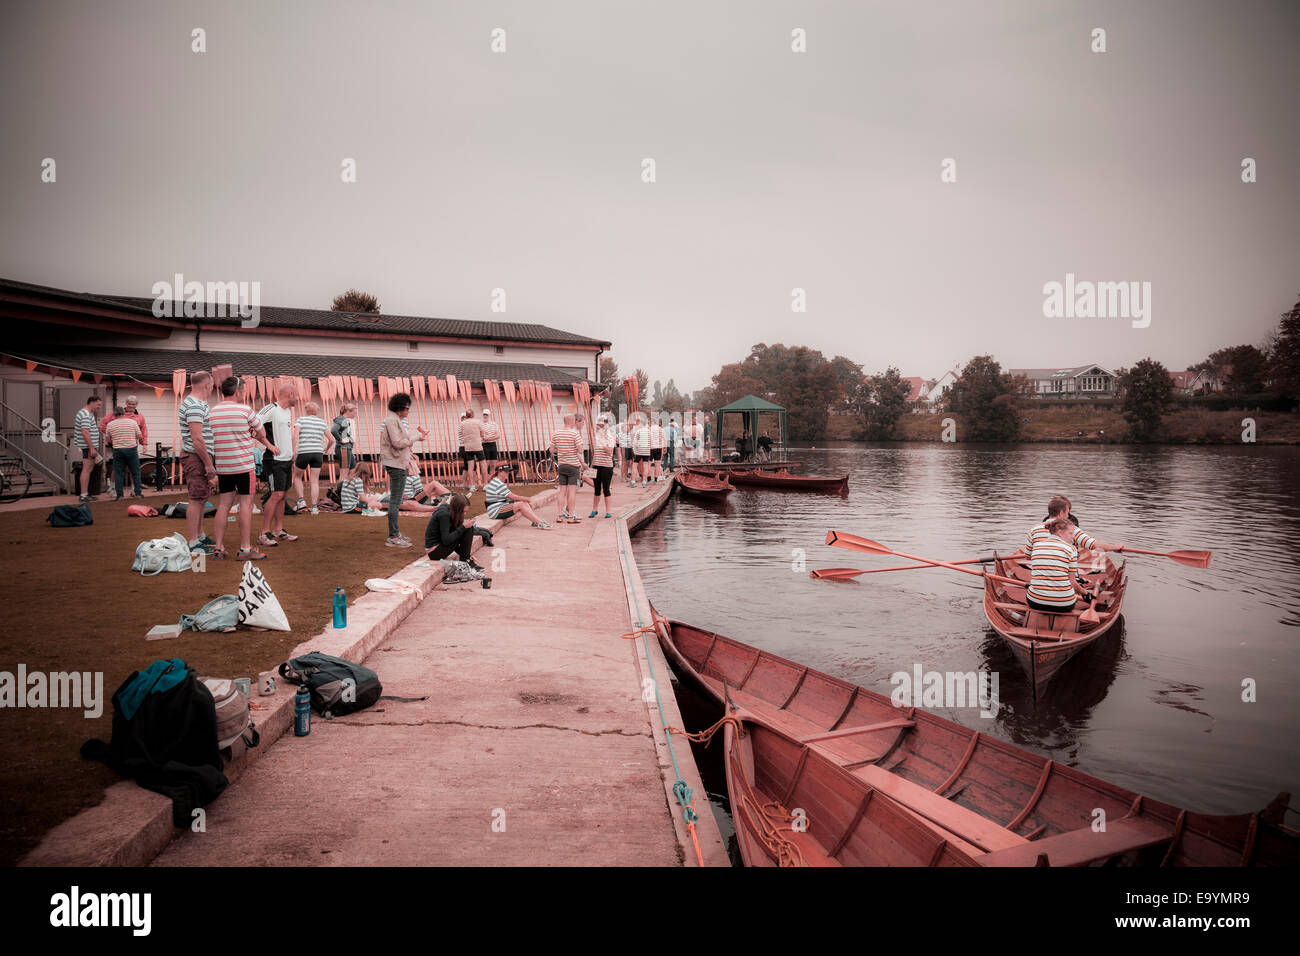 Rowing club skiff competition meeting on the thames instagram effect Stock Photo